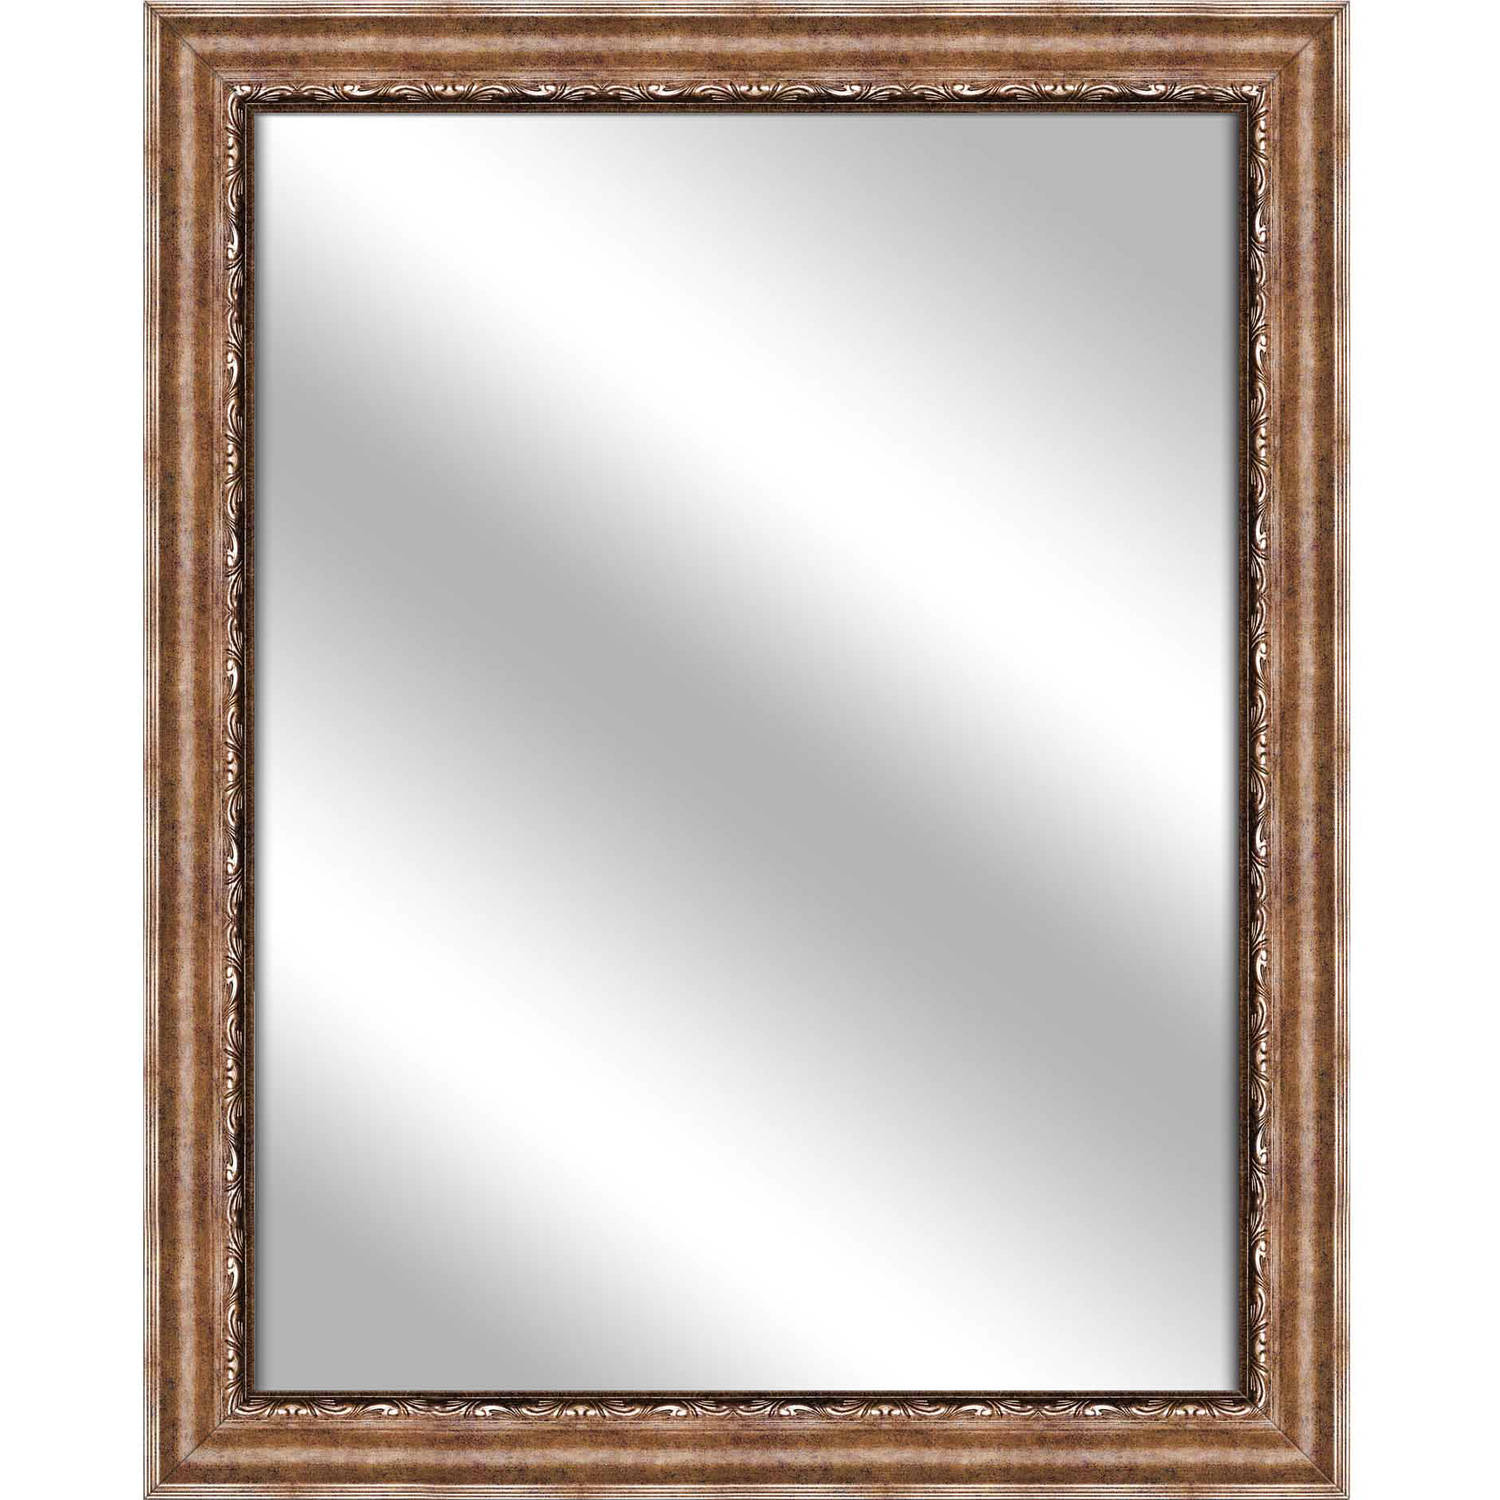 Vanity Mirror, Gold, 25.75x31.75 by PTM Images